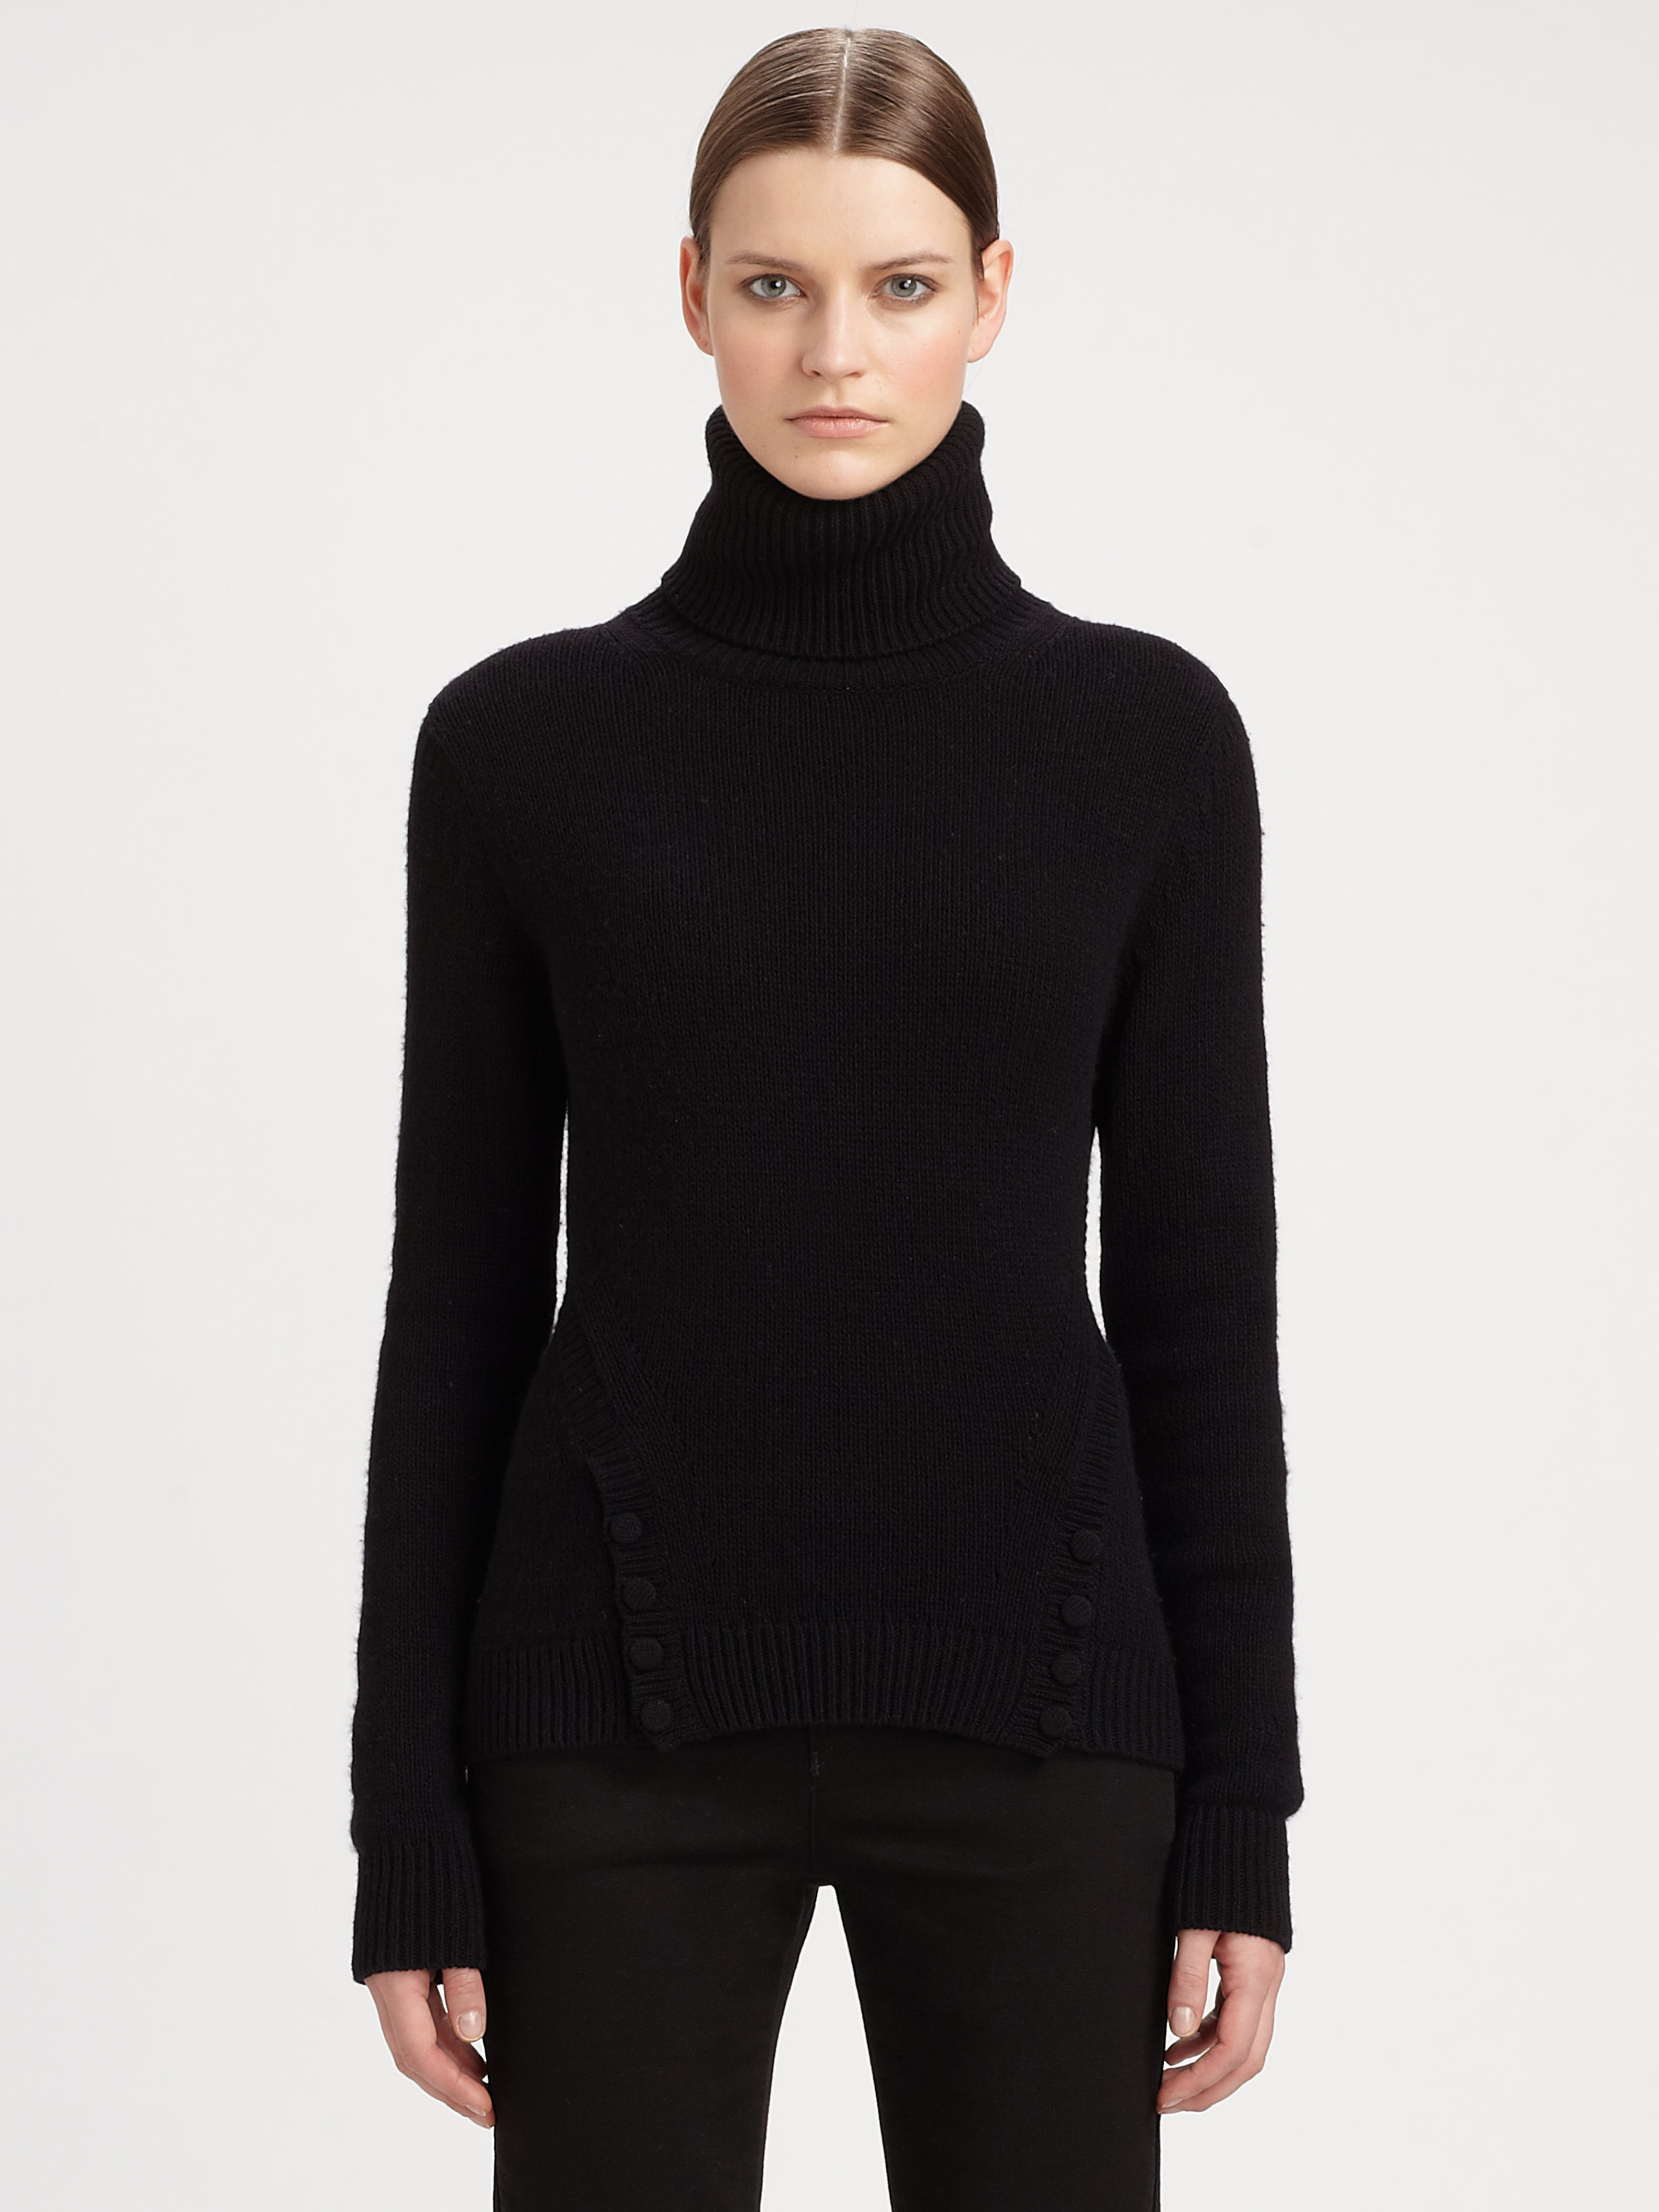 Alexander mcqueen Chunky Turtleneck Sweater in Black | Lyst